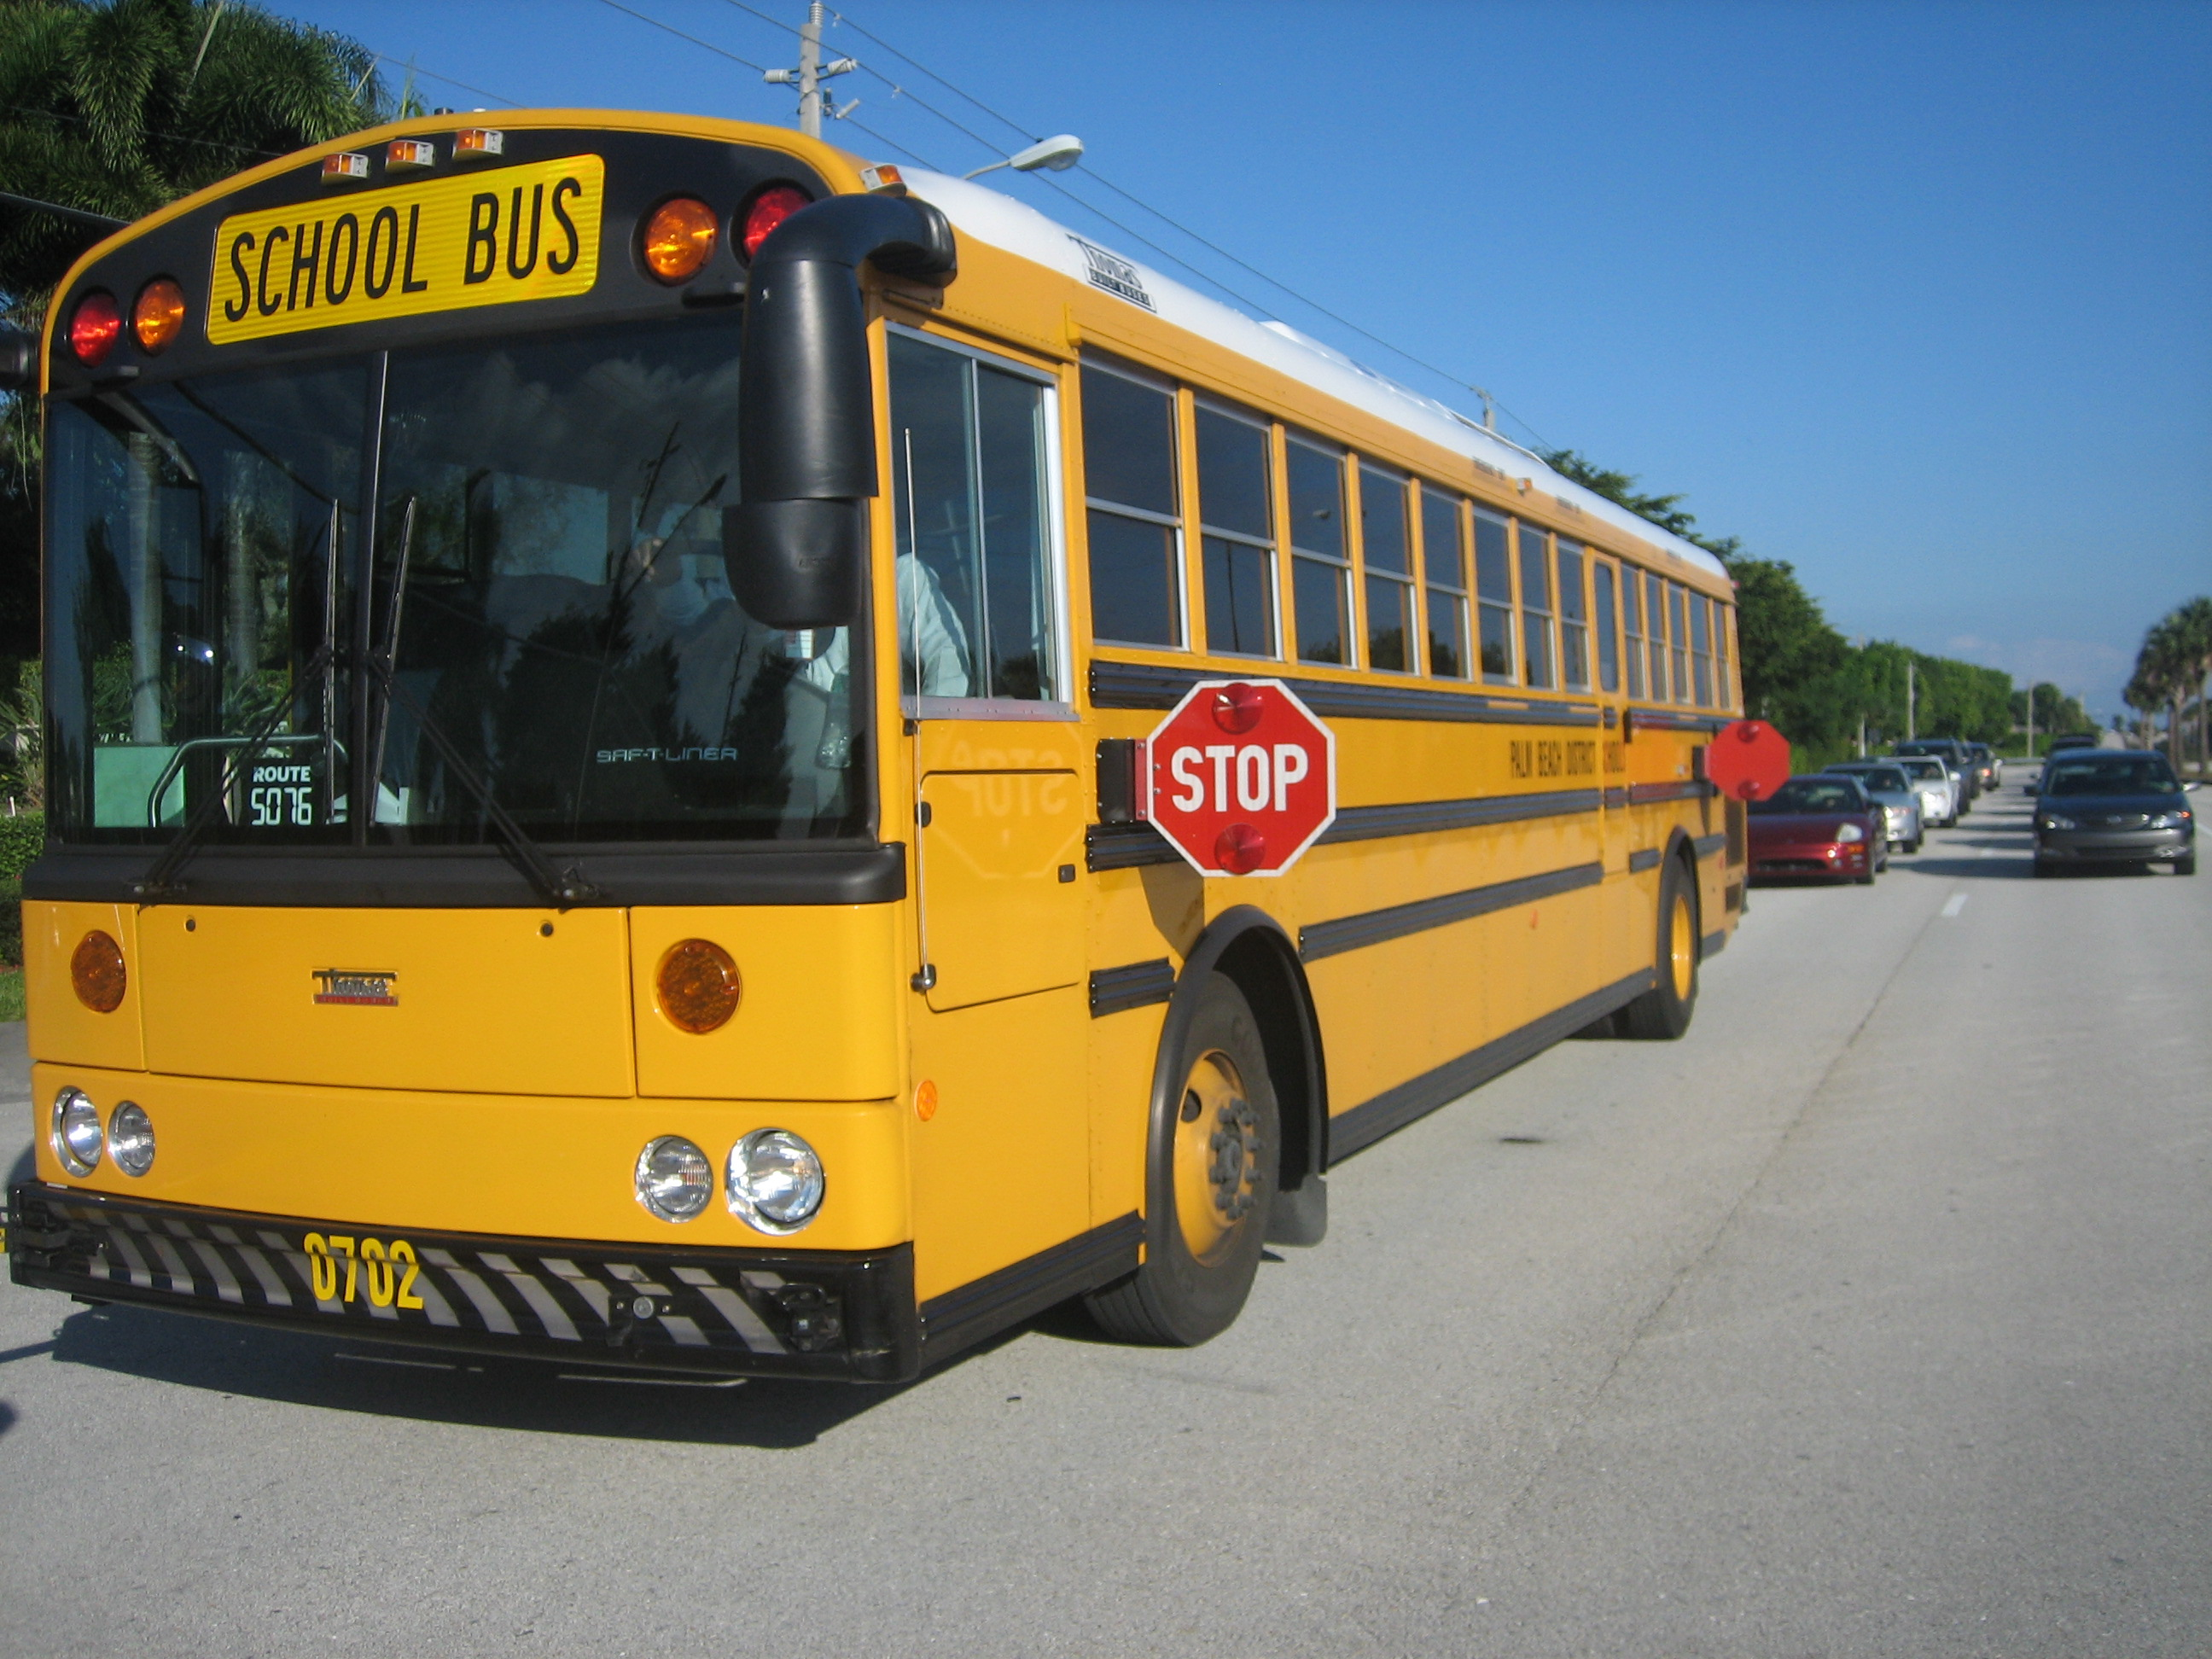 A Thomas Saf-T-Liner HDX school bus in the United States, displaying front and rear folding stop signs. Photo taken on December 21, 2007.